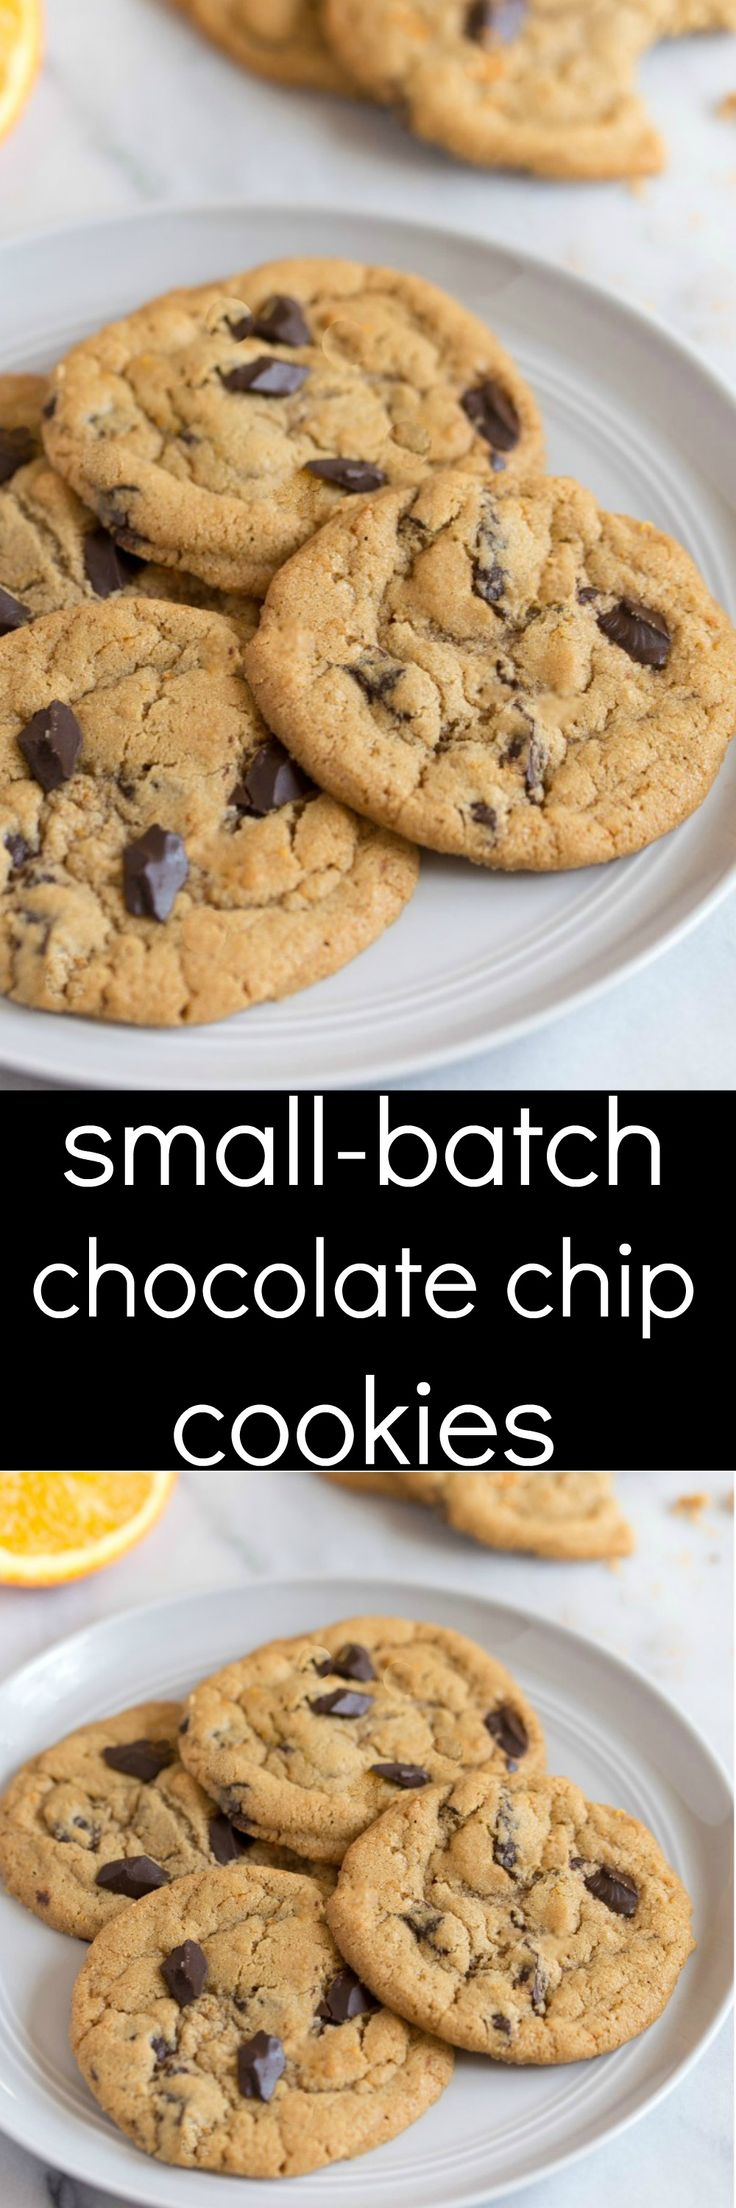 A small batch of chocolate chip cookies. Dessert for two recipes. Half batch cookie recipe